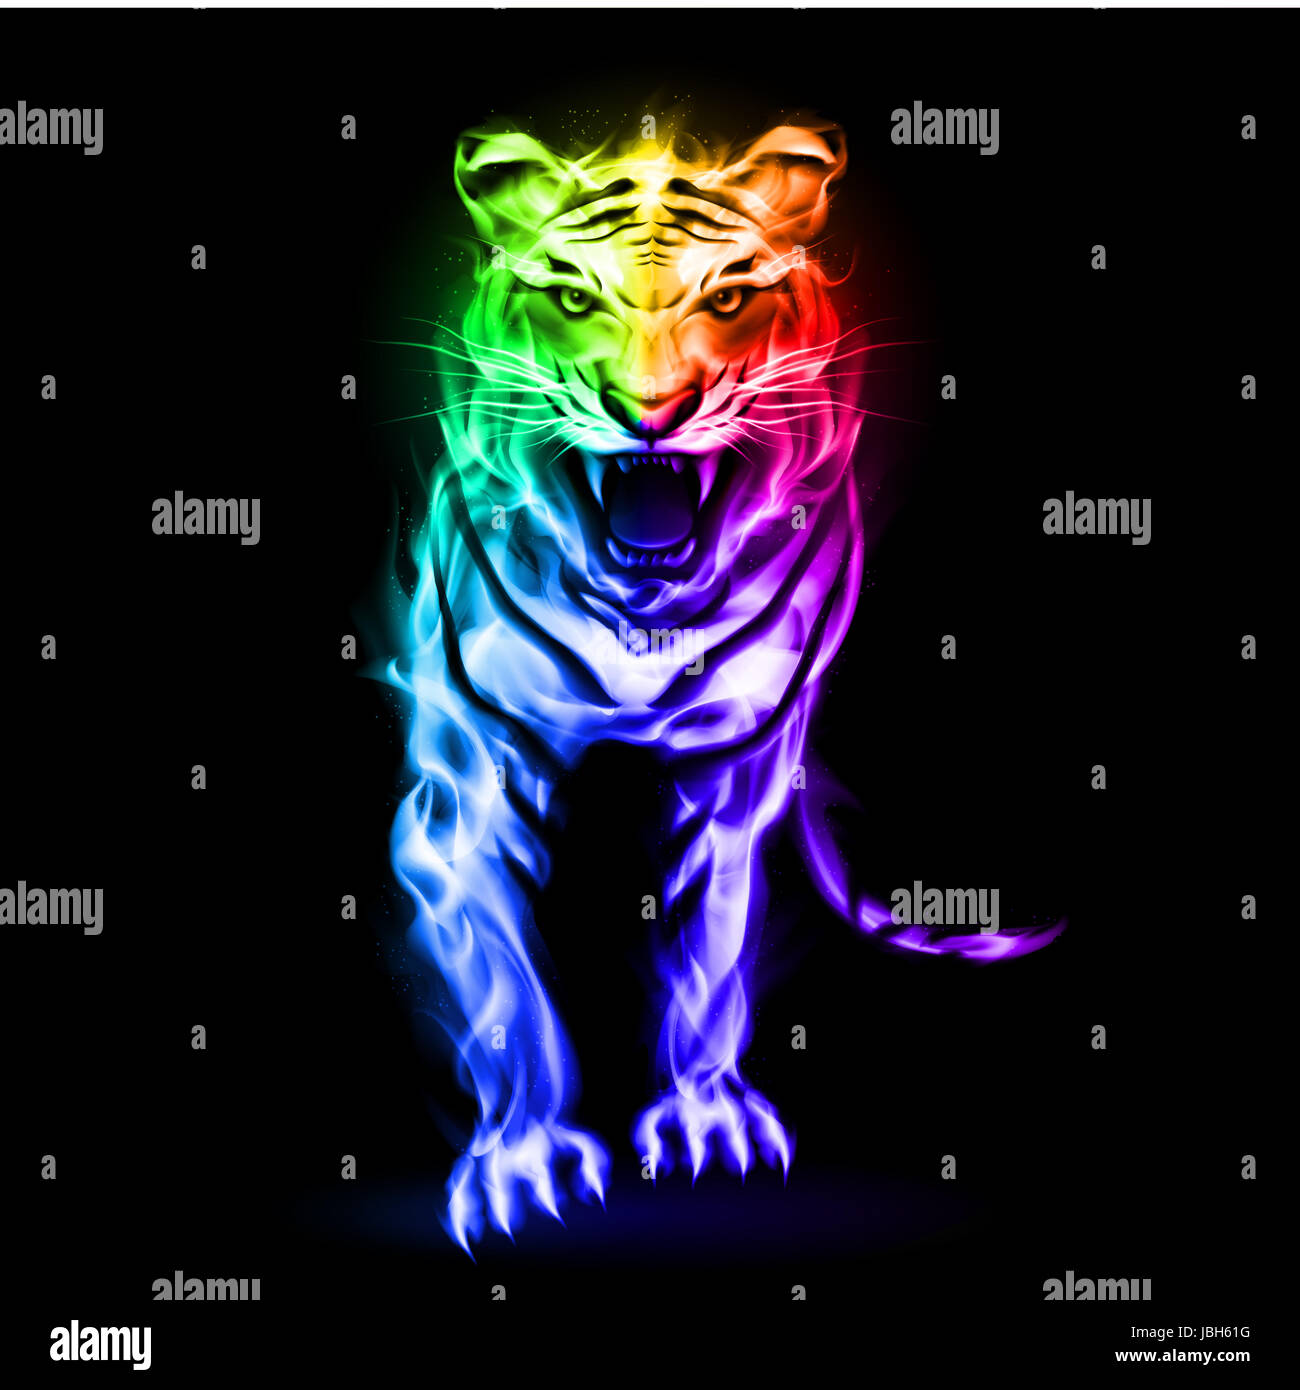 Fire tiger in spectrum colors on black background - Stock Image